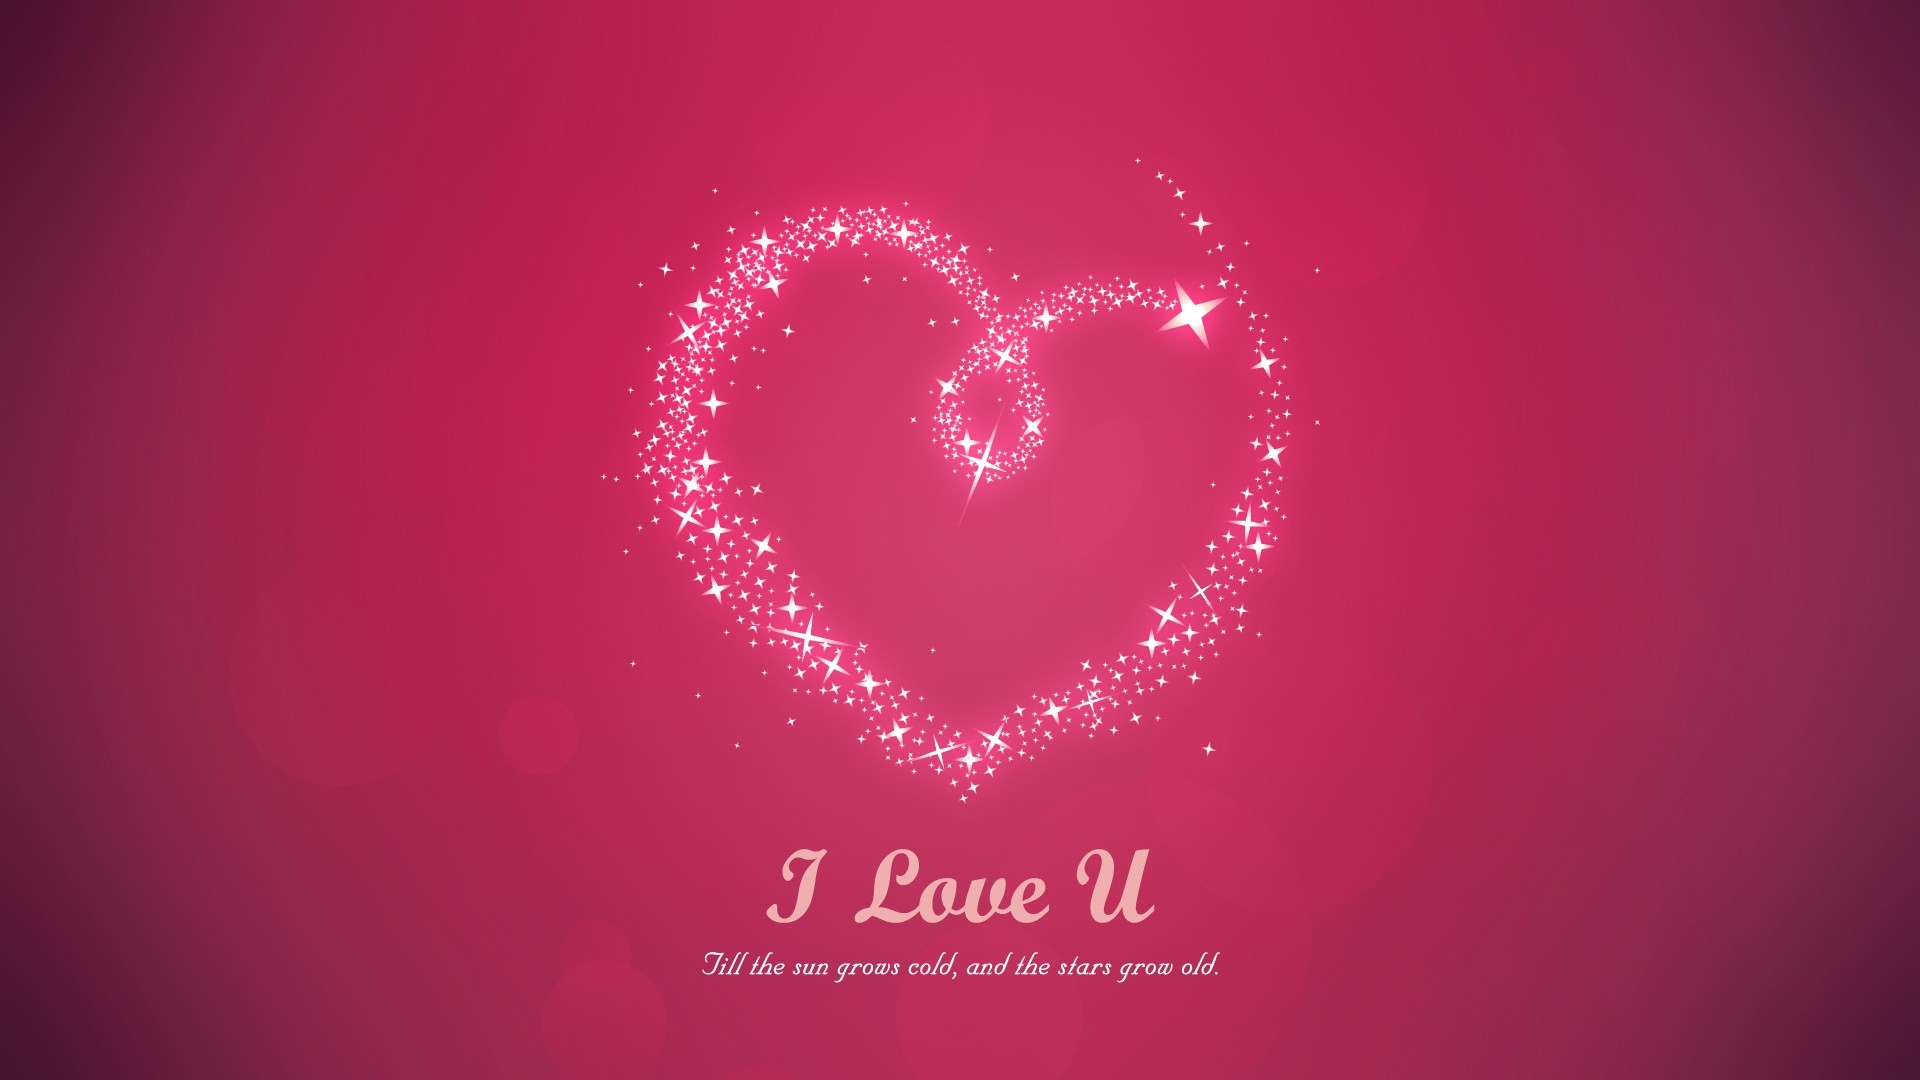 Desktop Wallpaper I Love You : I love You Wallpapers Archives - HD Desktop Wallpapers 4k HD